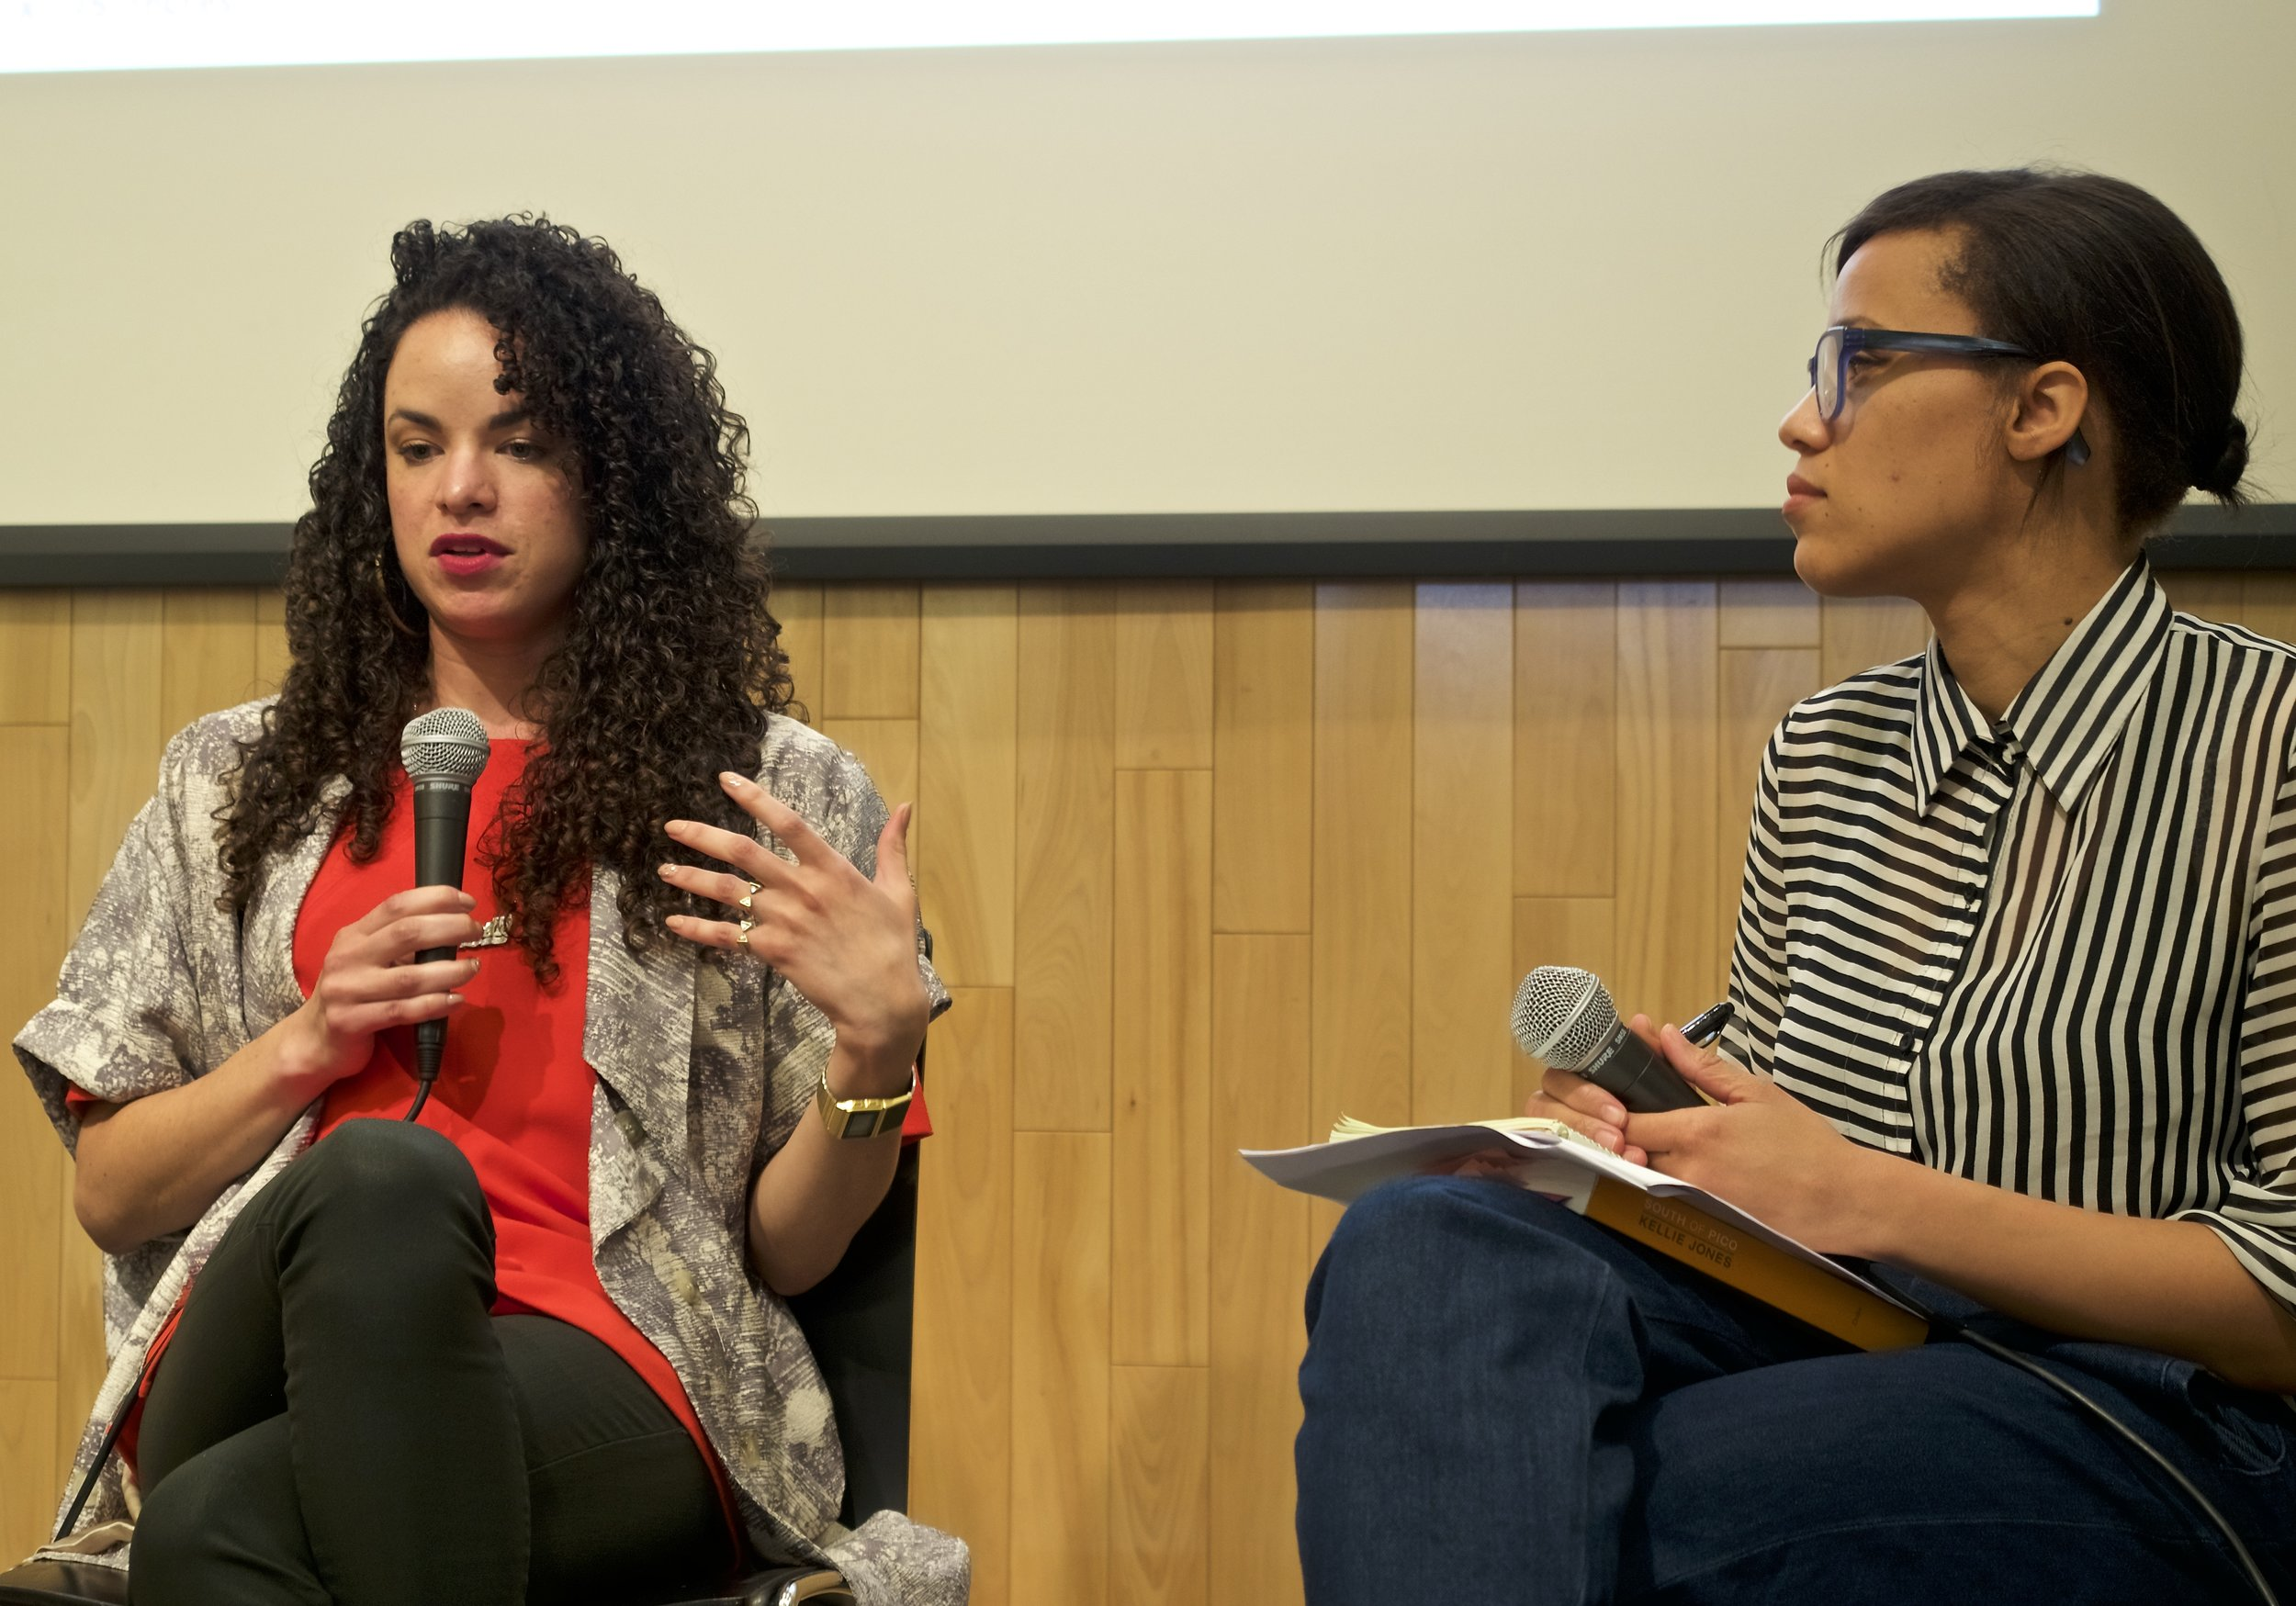 Sadie Barnette discusses art and activism in Los Angeles.